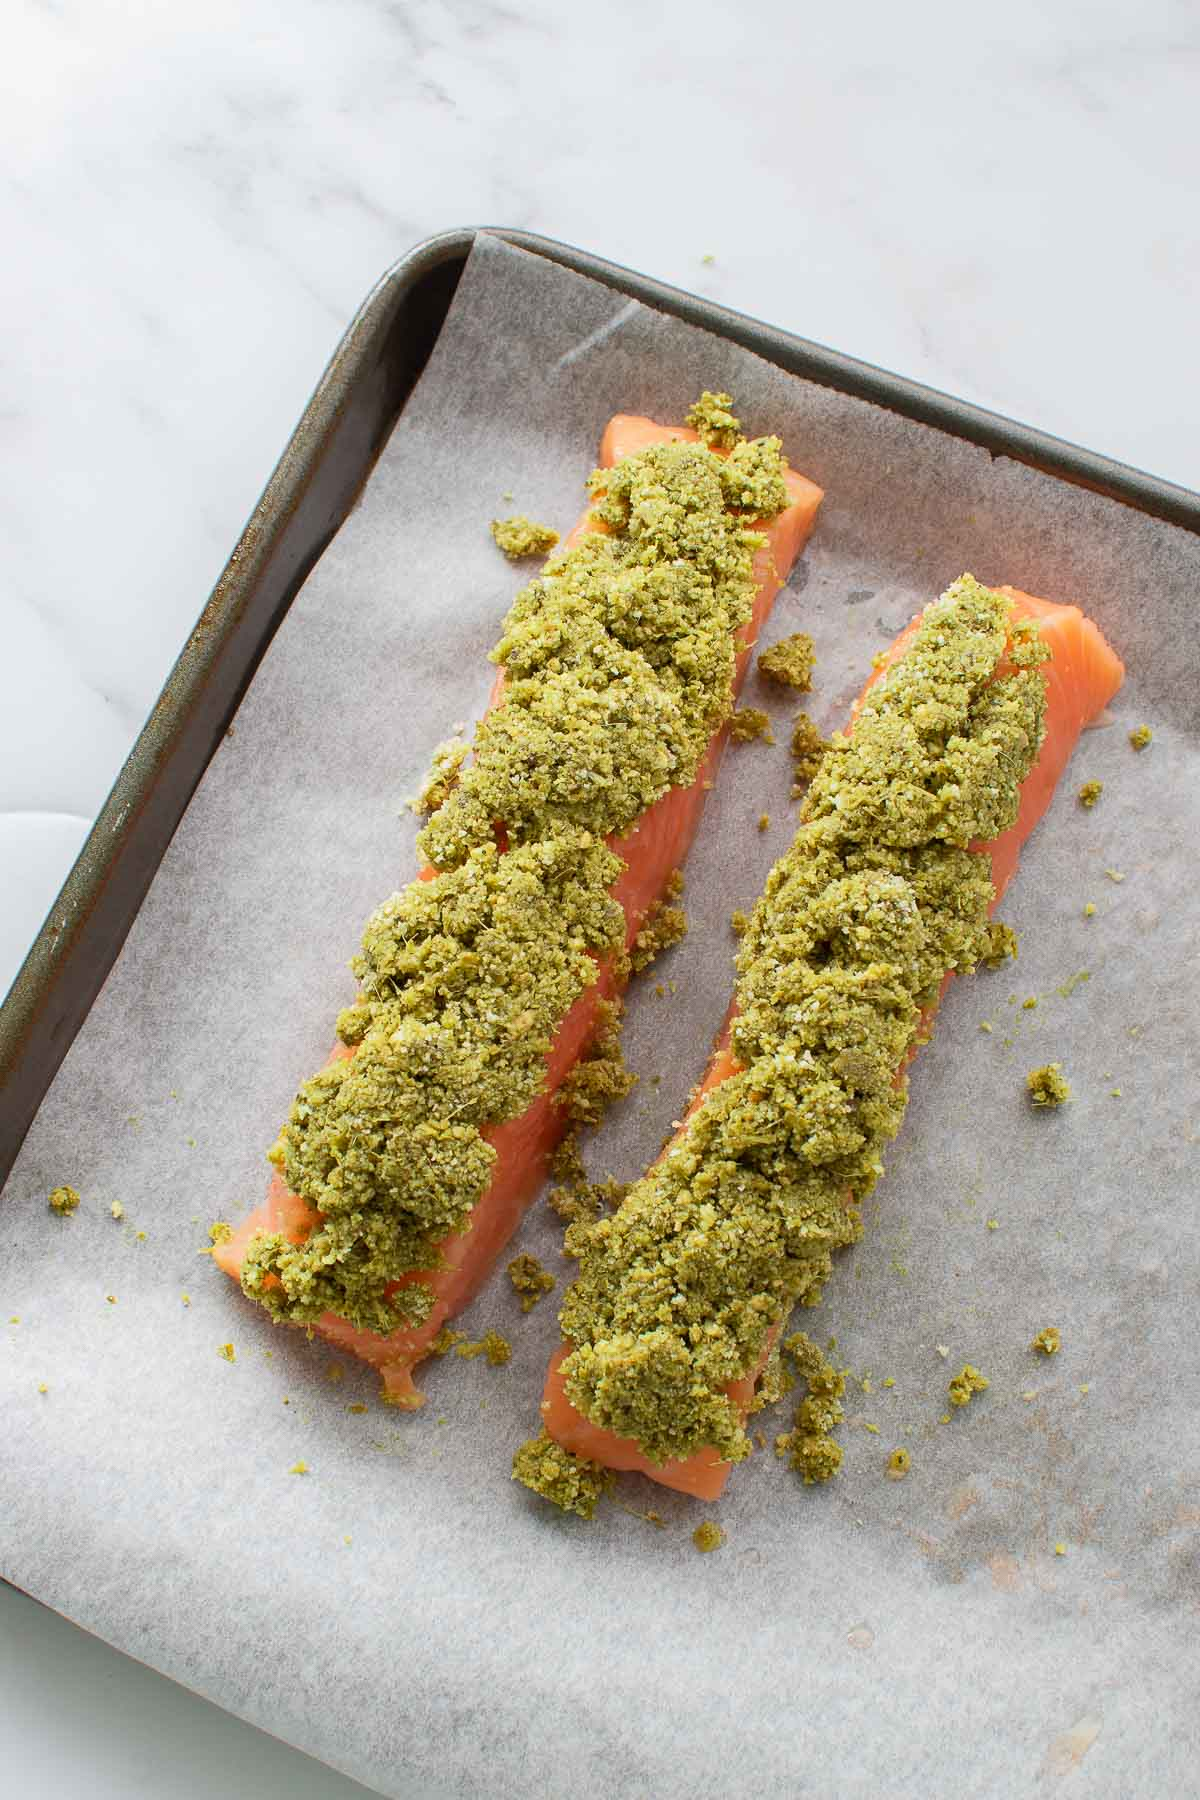 Salmon fillets with breadcrumbs and pesto topping.